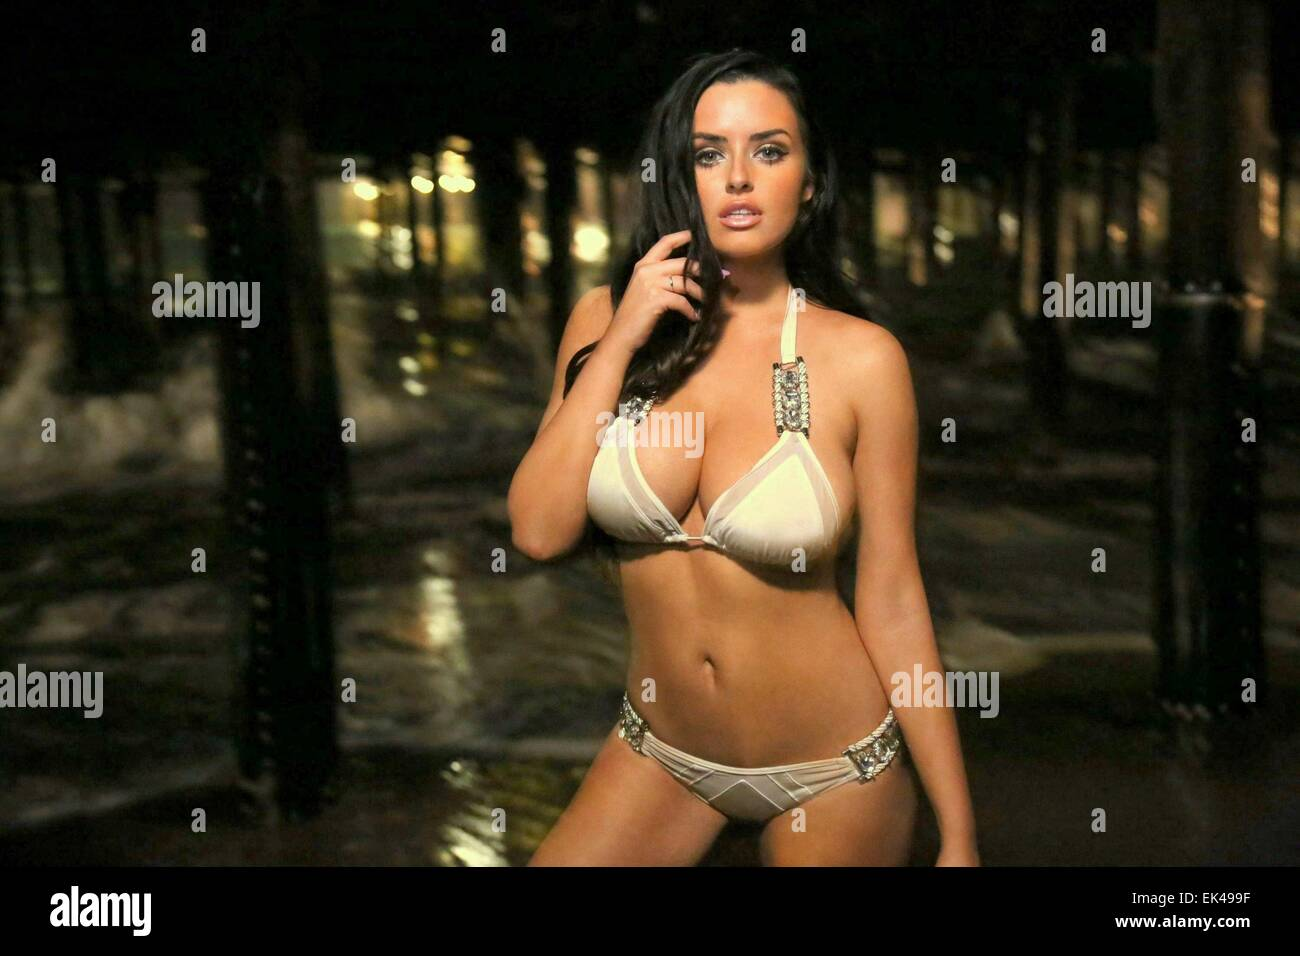 Abigail Ratchford United States